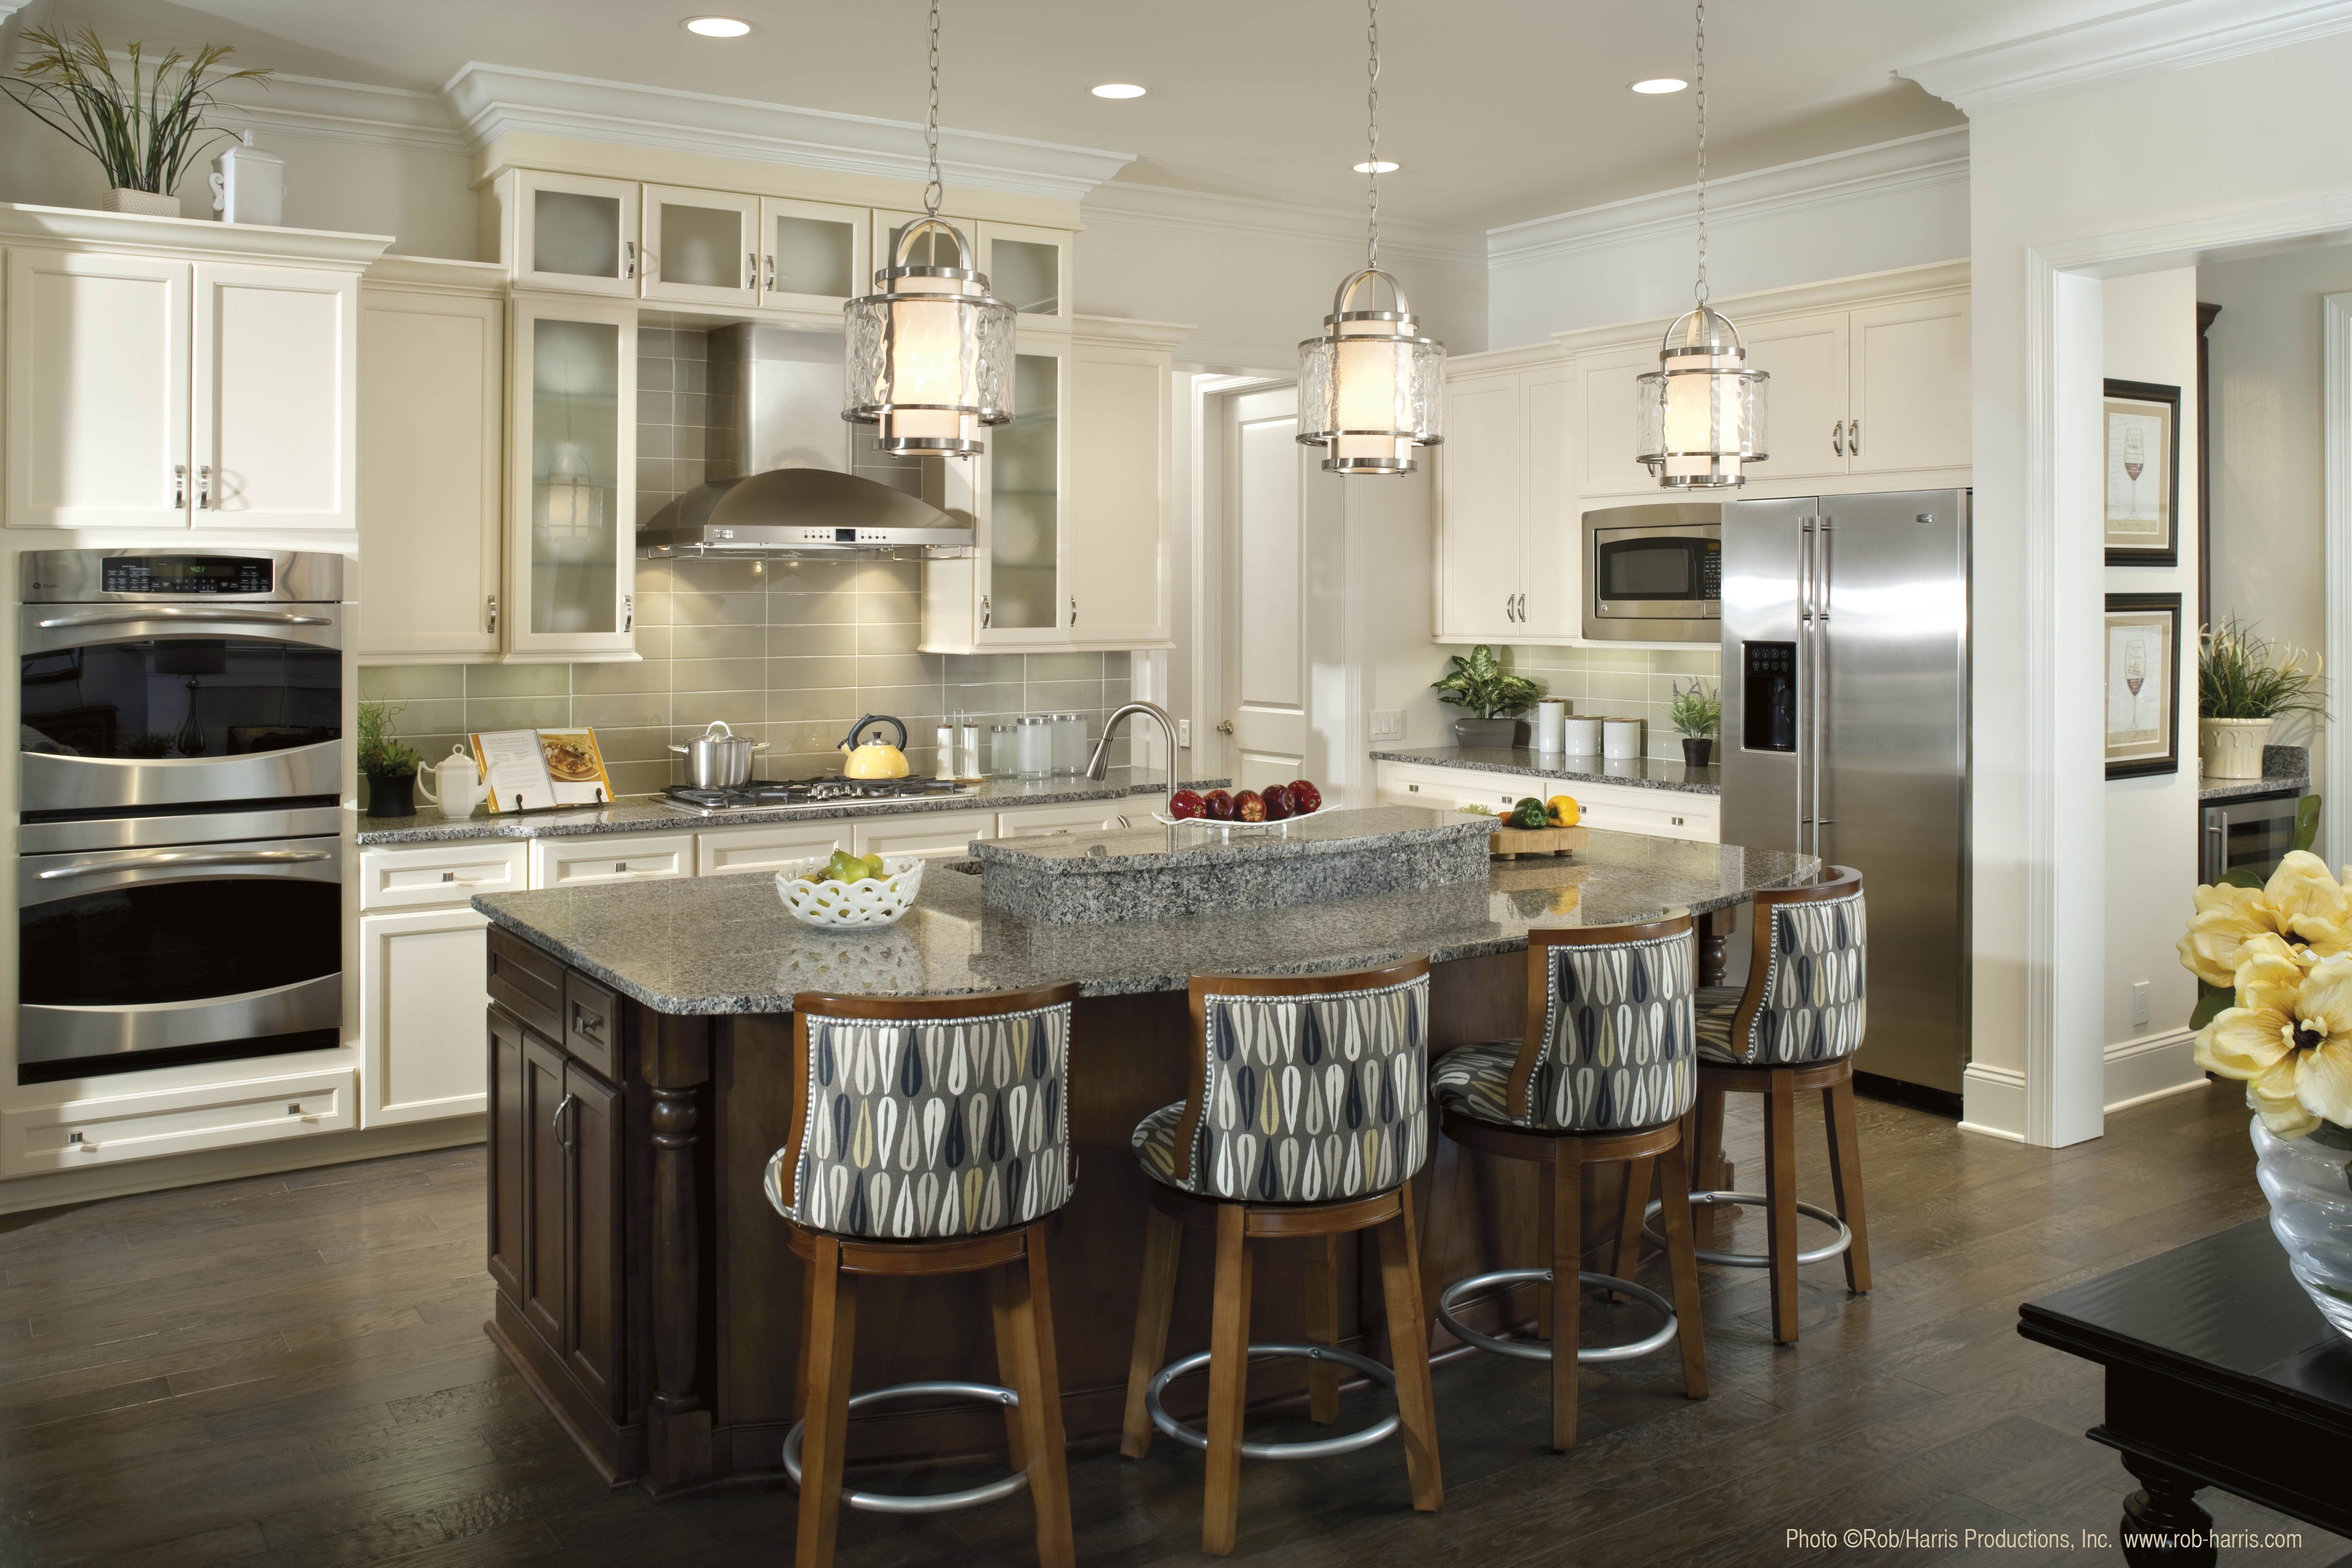 Lighting Over Kitchen Table Pendant Lighting Over Kitchen Island The Perfect Amount Of